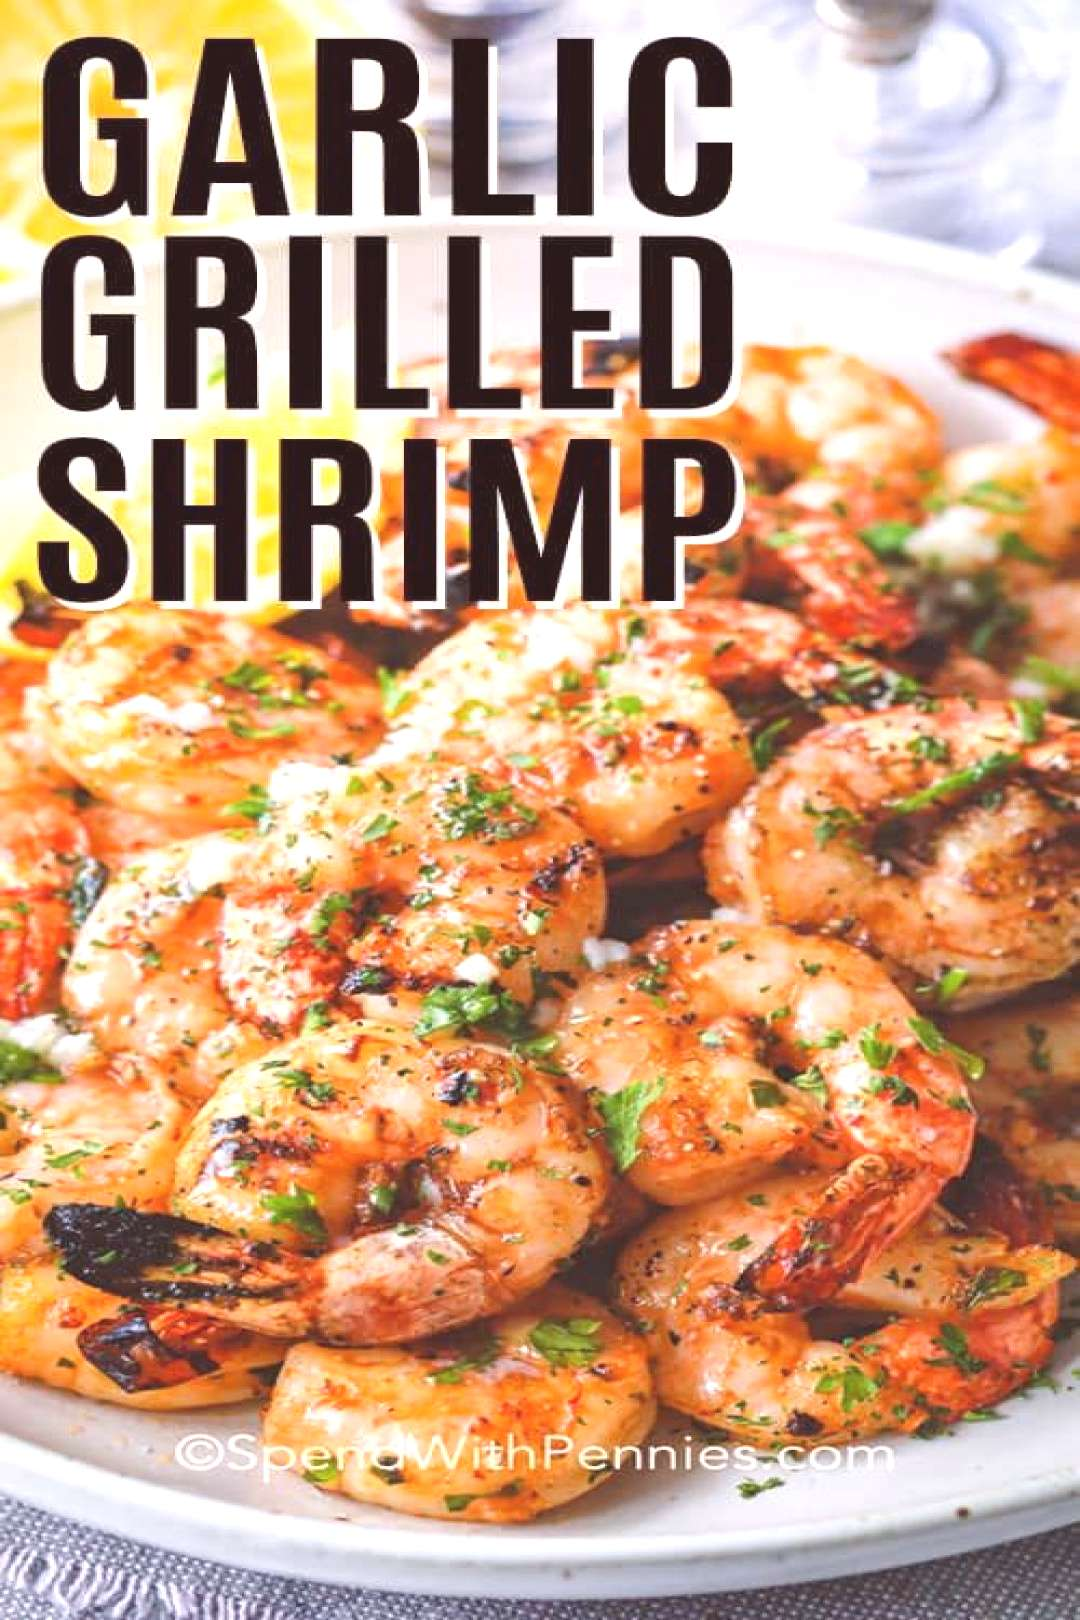 Garlic Grilled Shrimp - Spend With Pennies -  Garlic Grilled Shrimp is a perfect summer staple on t